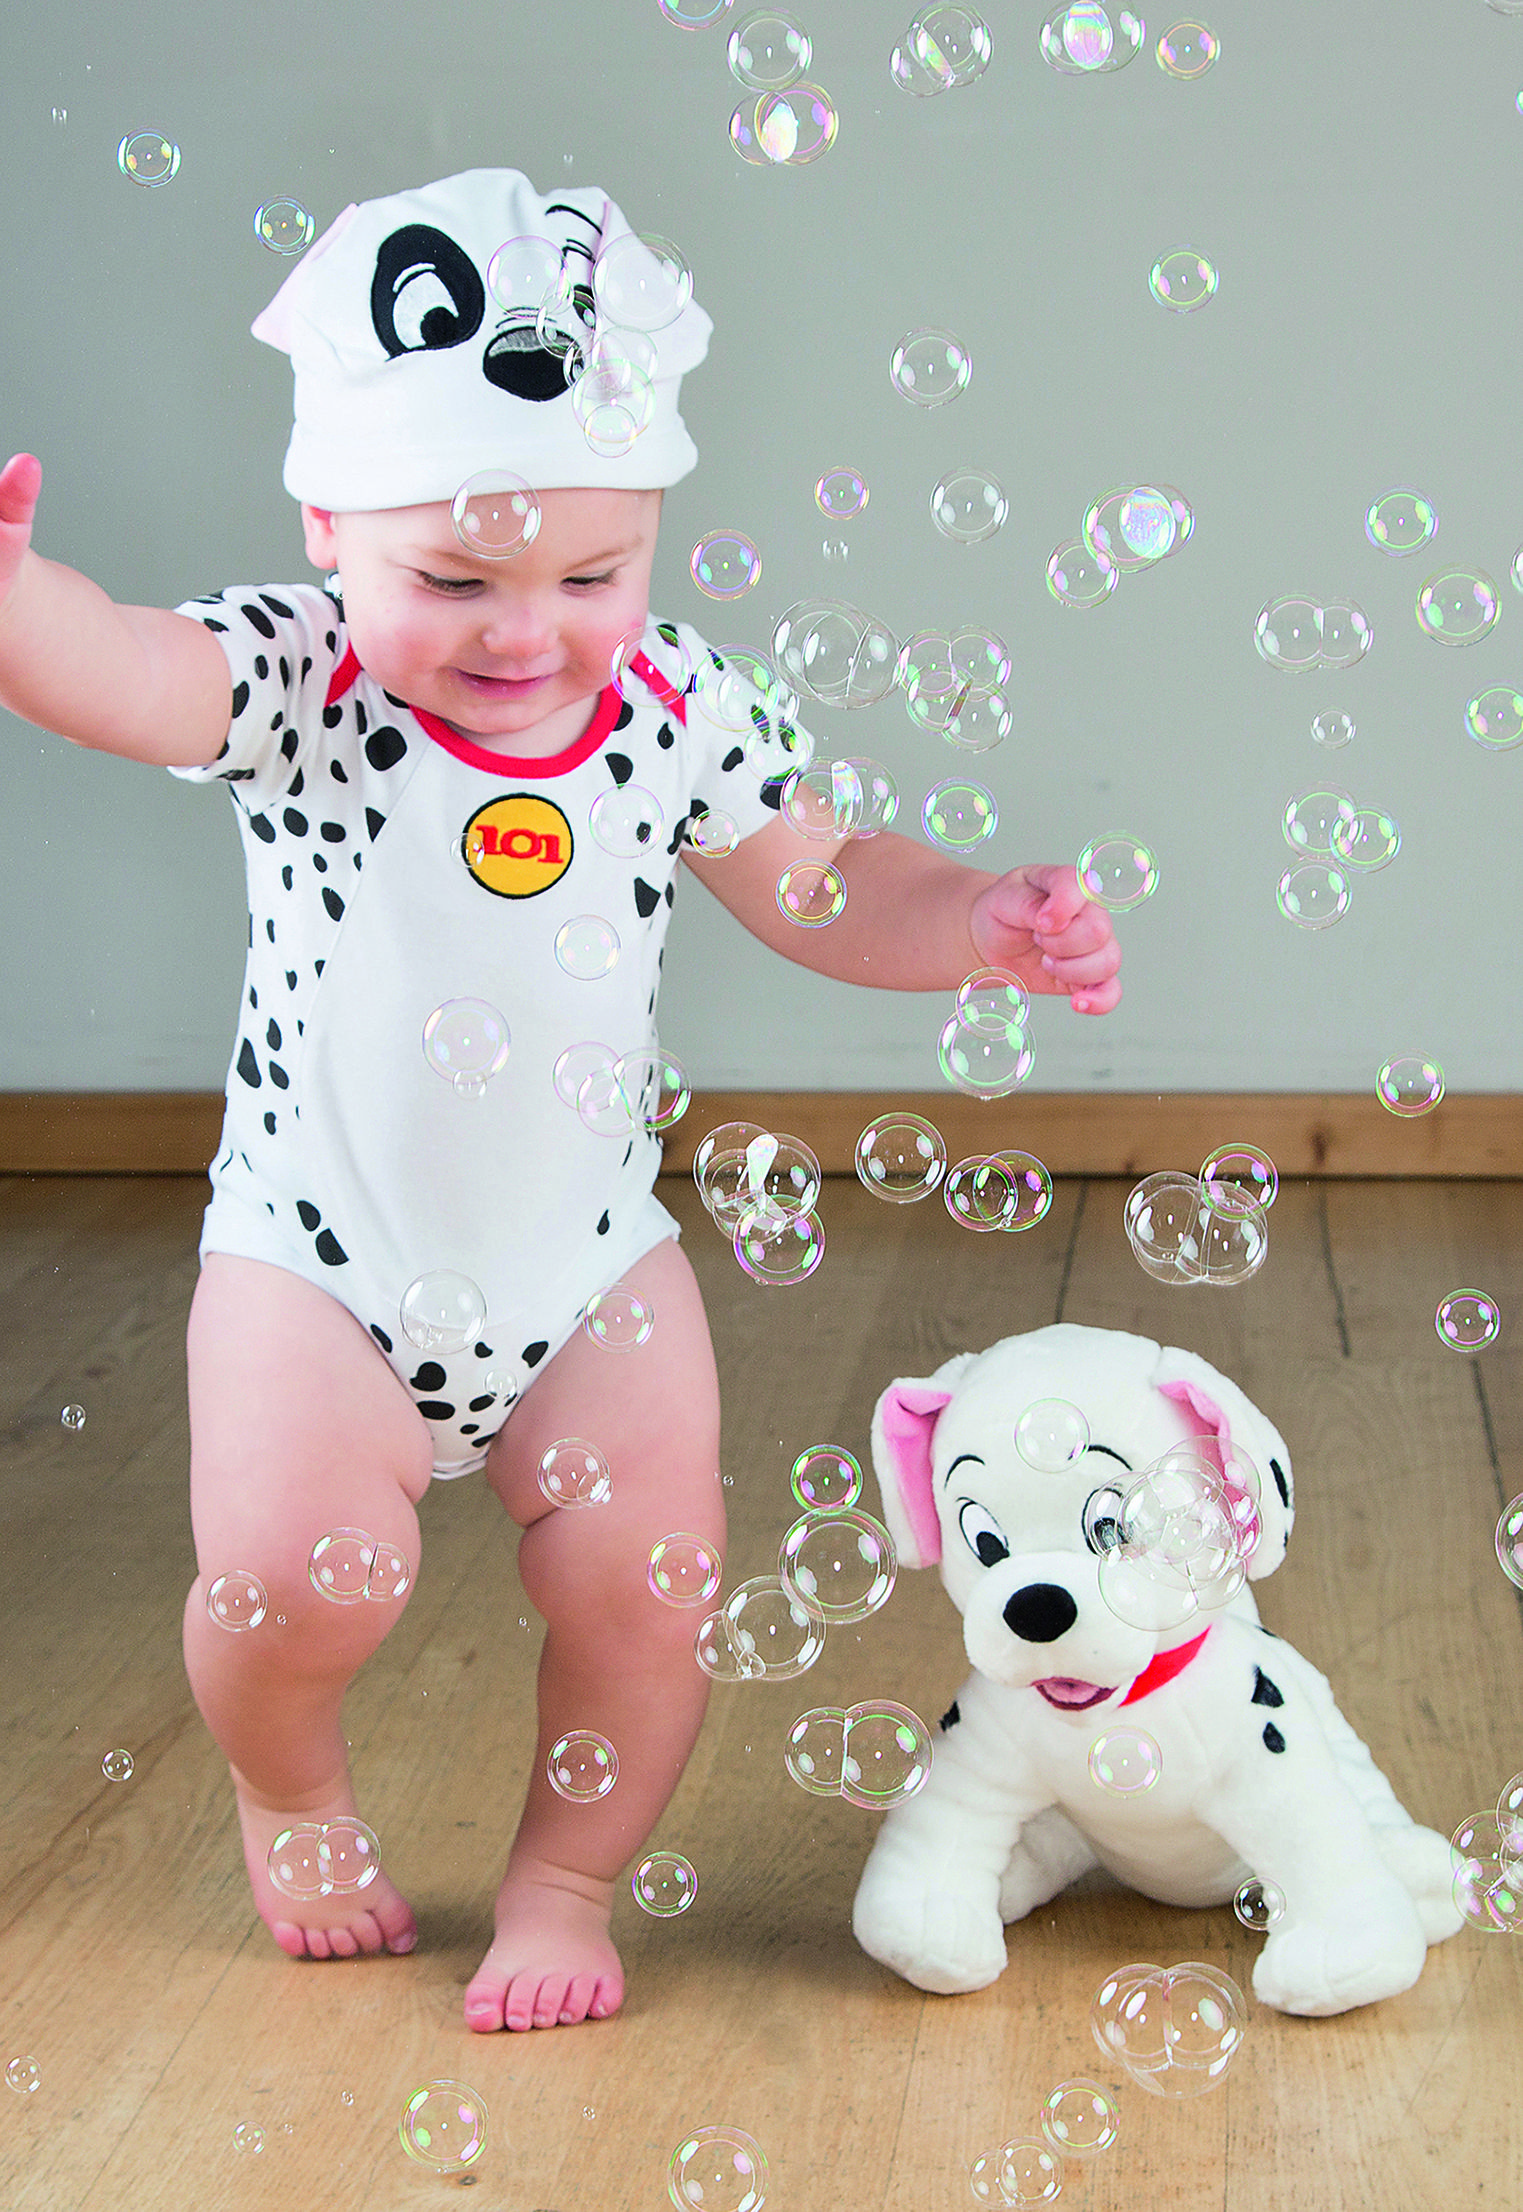 ba4cd05b697 101 Dalmatians Patch Jersey Bodysuit and Hat ~ This adorable 101 Dalmatians  bodysuit is made of soft cotton jersey and has short sleeves and popper ...